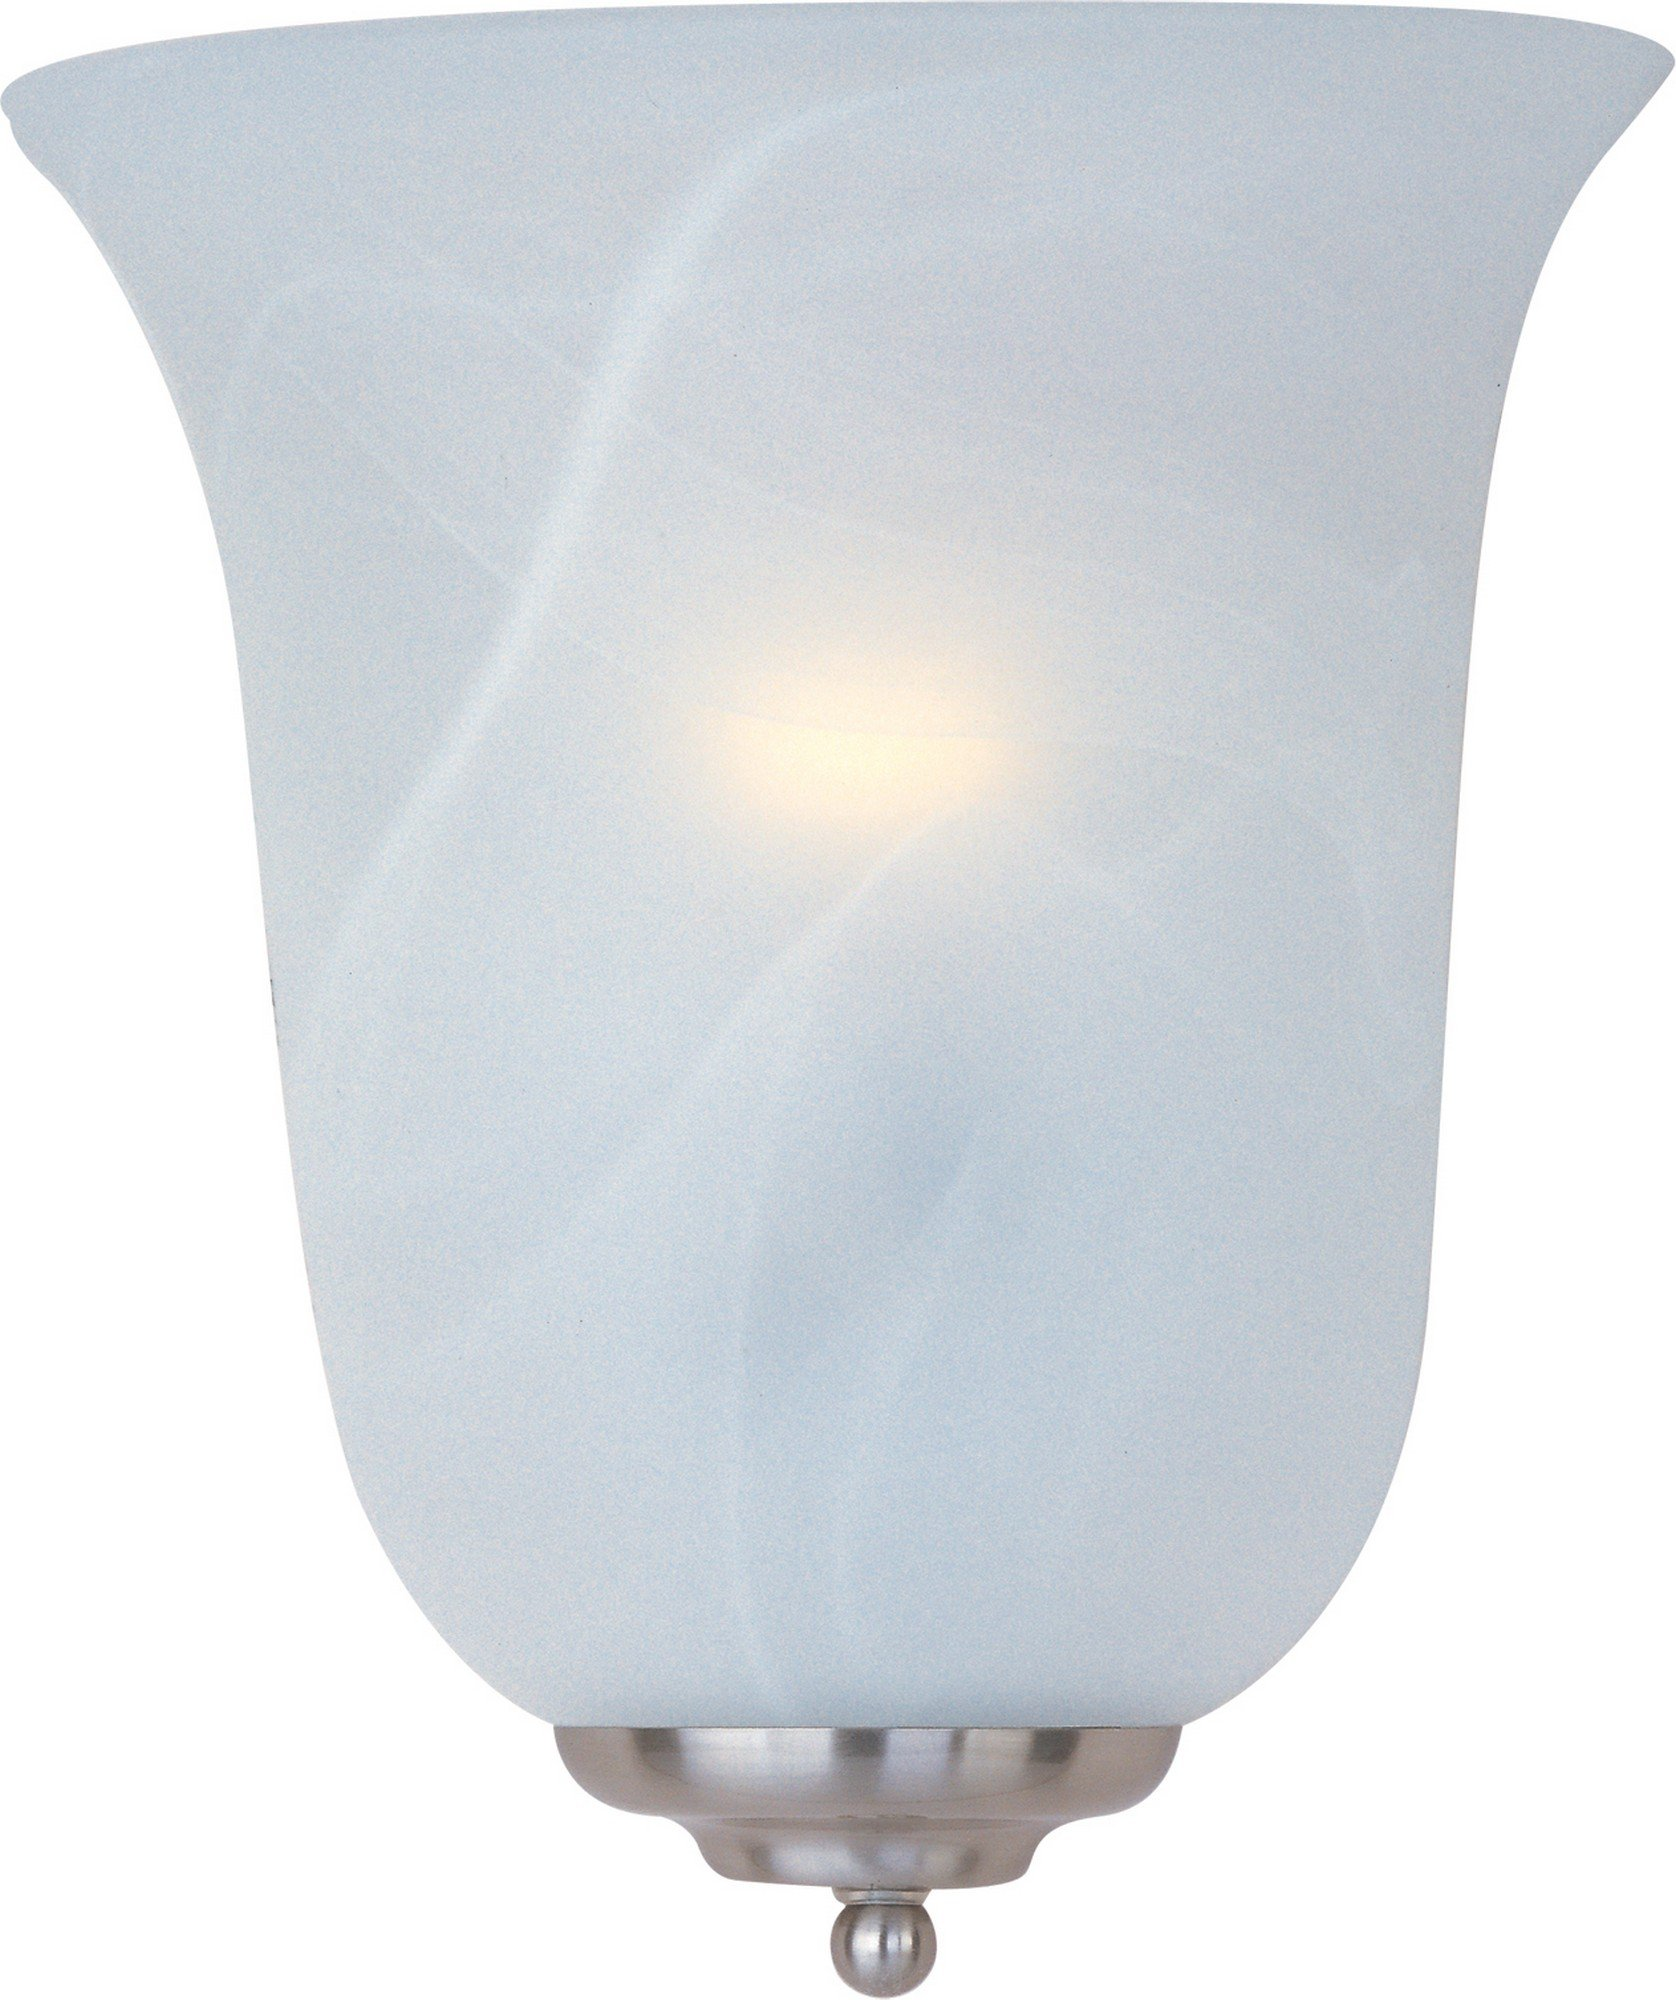 Maxim 20581MRSN Essentials 1-Light Wall Sconce, Satin Nickel Finish, Marble Glass, MB Incandescent Incandescent Bulb , 100W Max., Dry Safety Rating, Standard Dimmable, Glass Shade Material, 10350 Rated Lumens